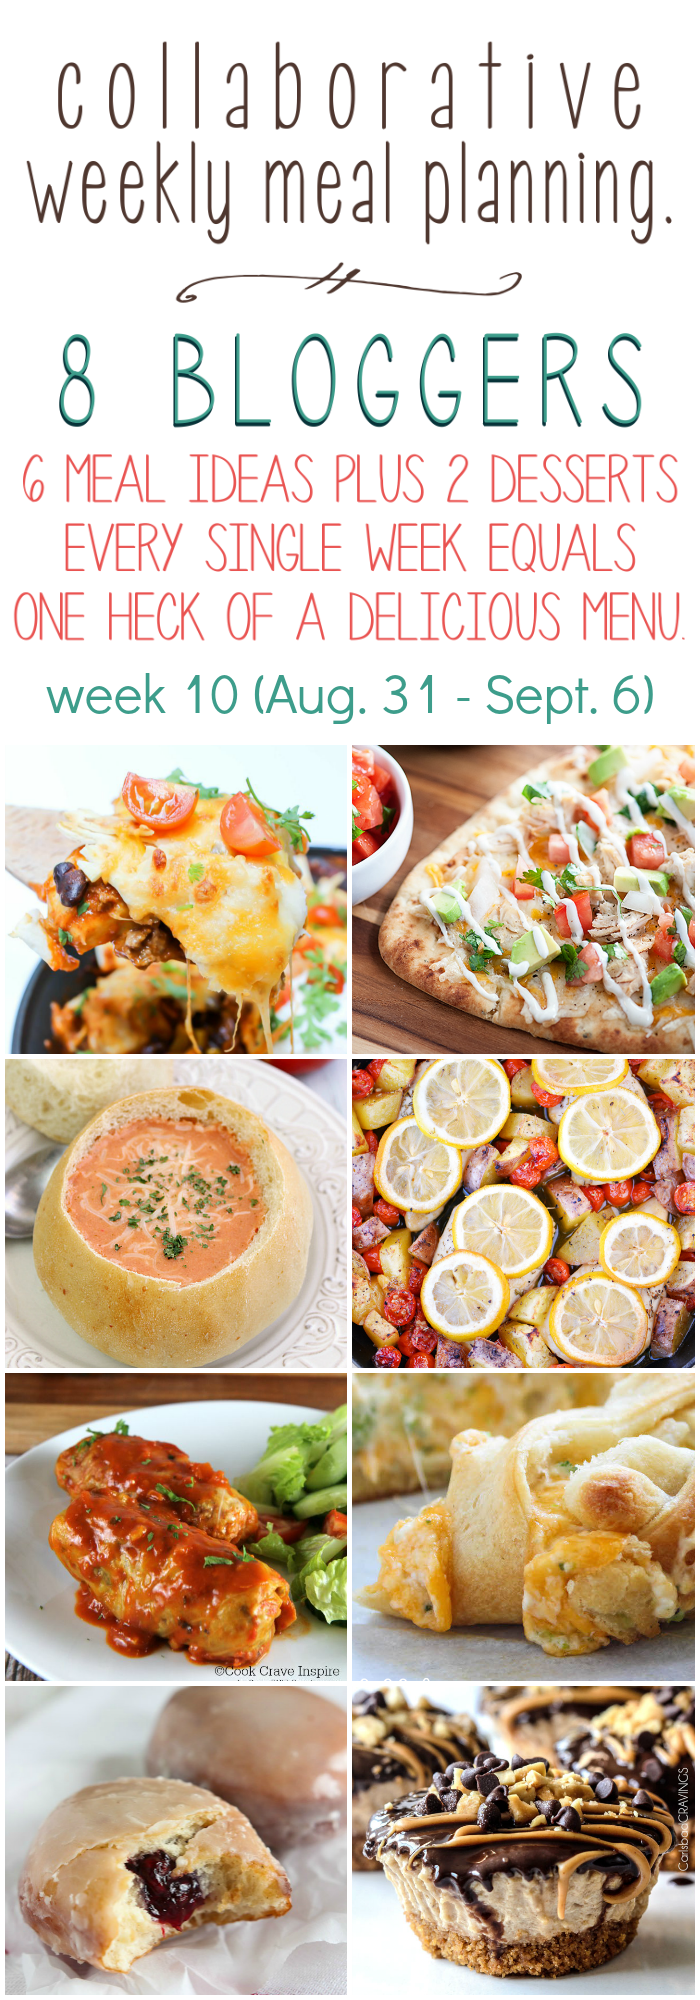 Collaborative weekly meal planning. 8 bloggers. 6 meal ideas plus 2 desserts every single week equals one heck of a delicious menu - week 10.